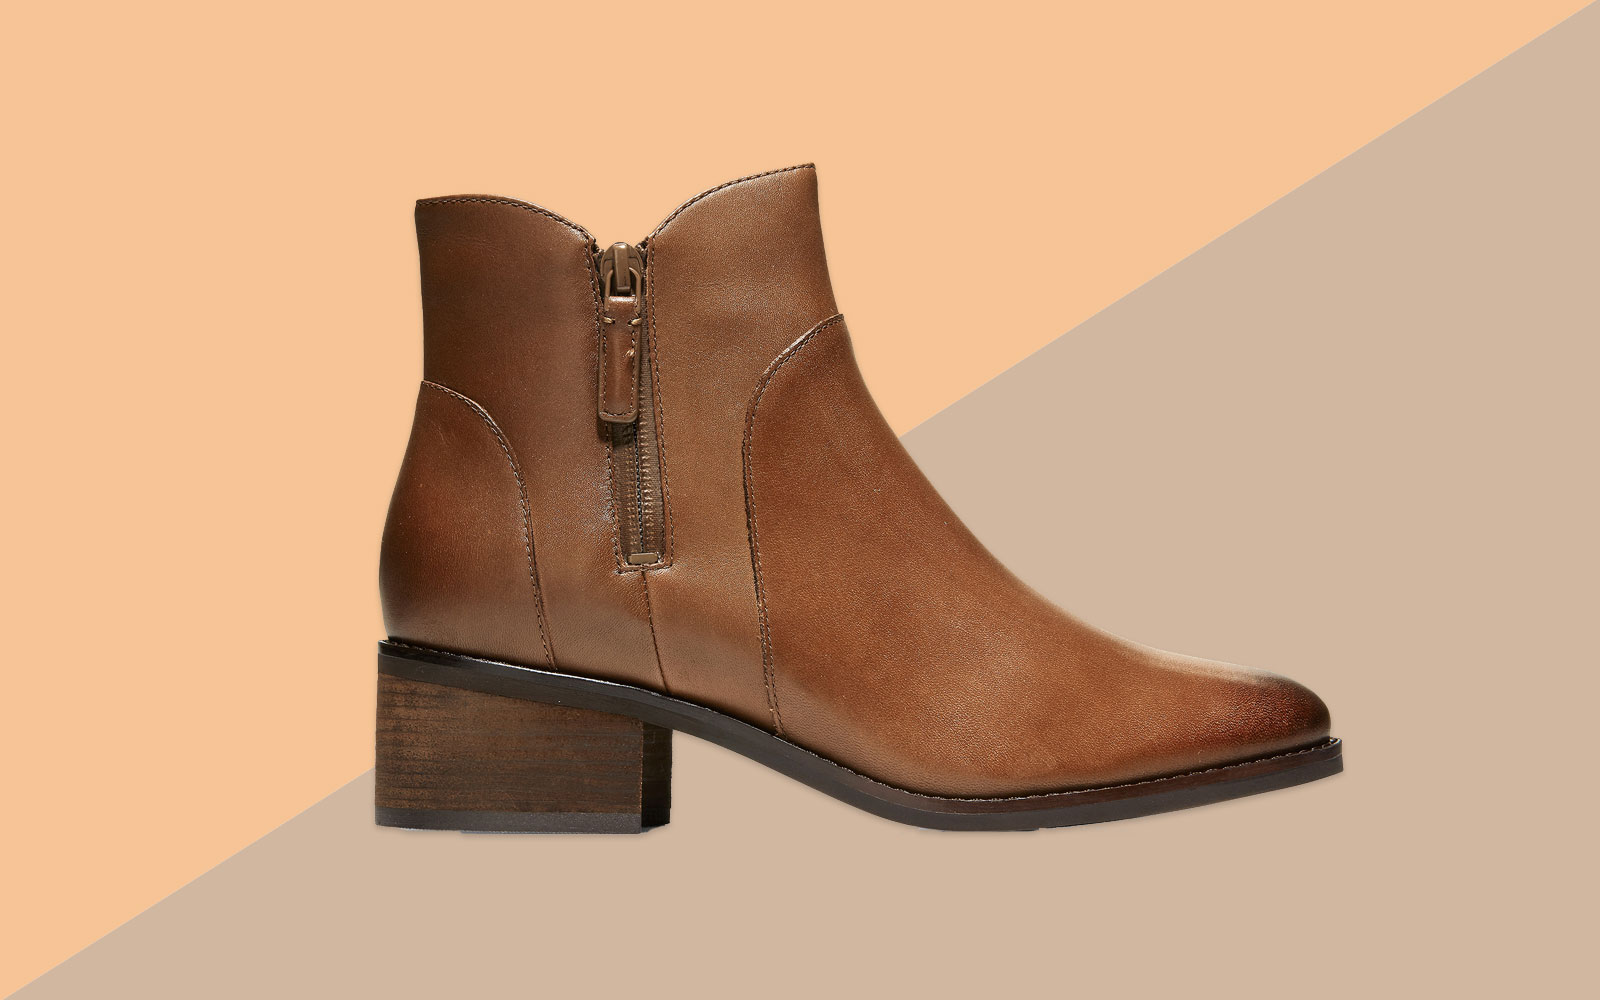 Brown/Tan Leather Ankle Boot